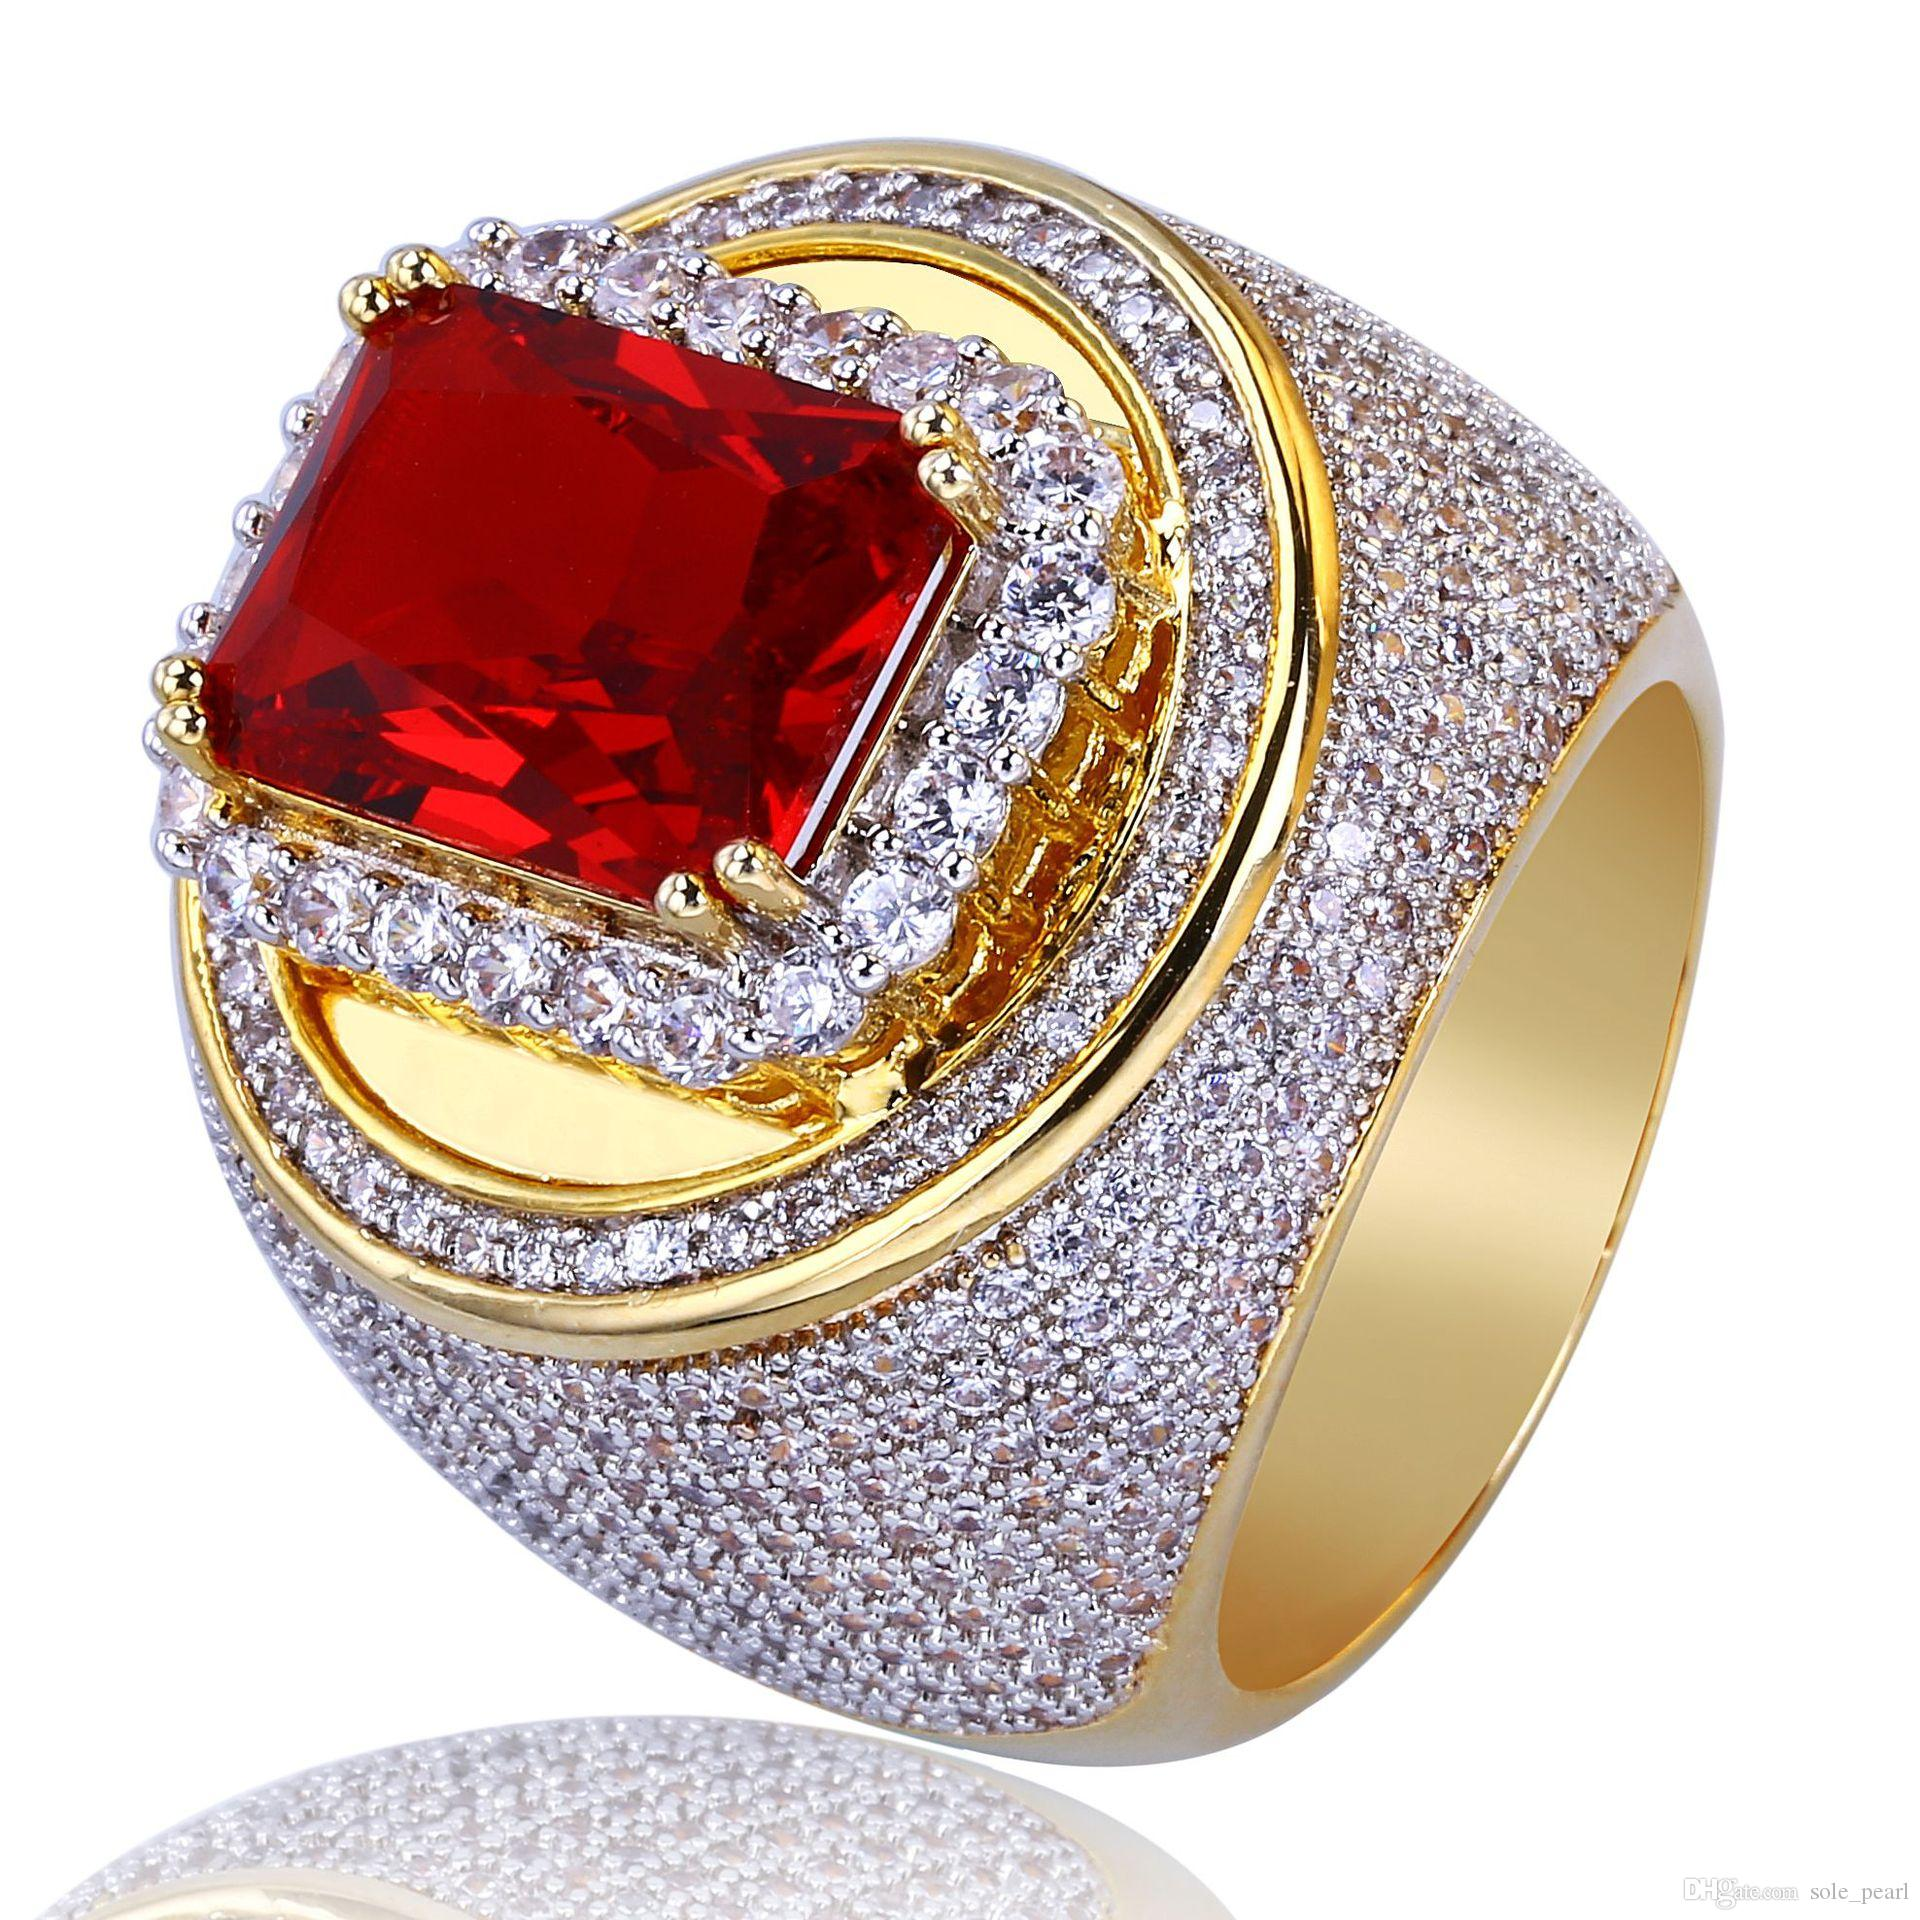 new mens ring vintage hip hop jewelry ruby Zircon iced out copper rings luxury real gold plated for lover fashion Jewelry wholesale